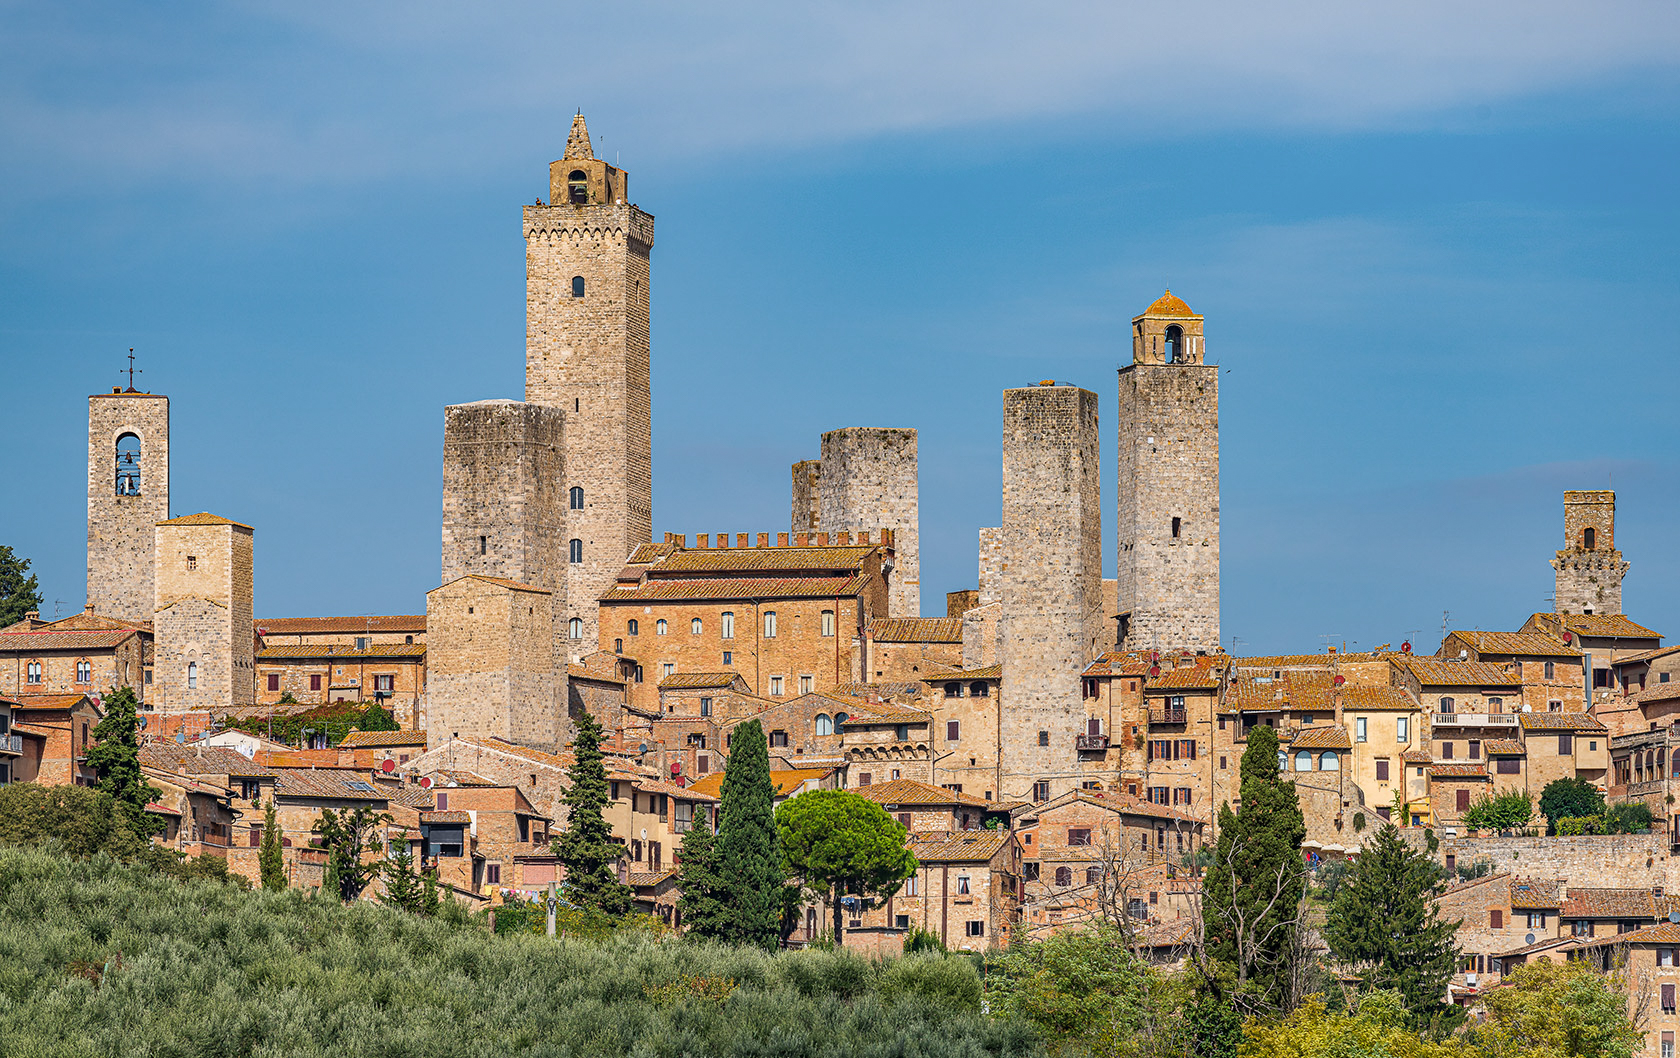 View of San Gimignano in Tuscany